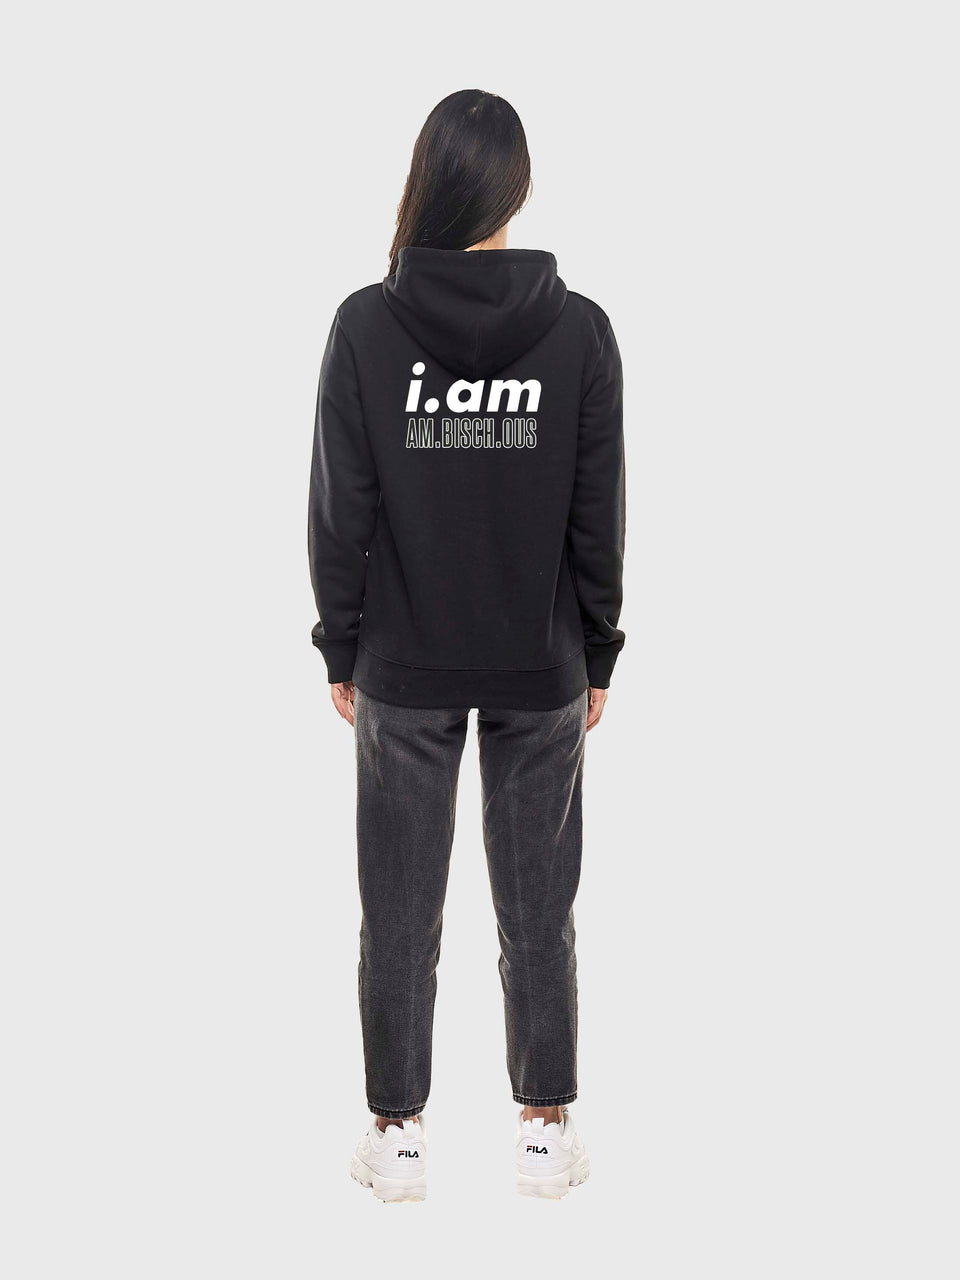 Am.bisch.ous - Black - unisex pull over hoodie